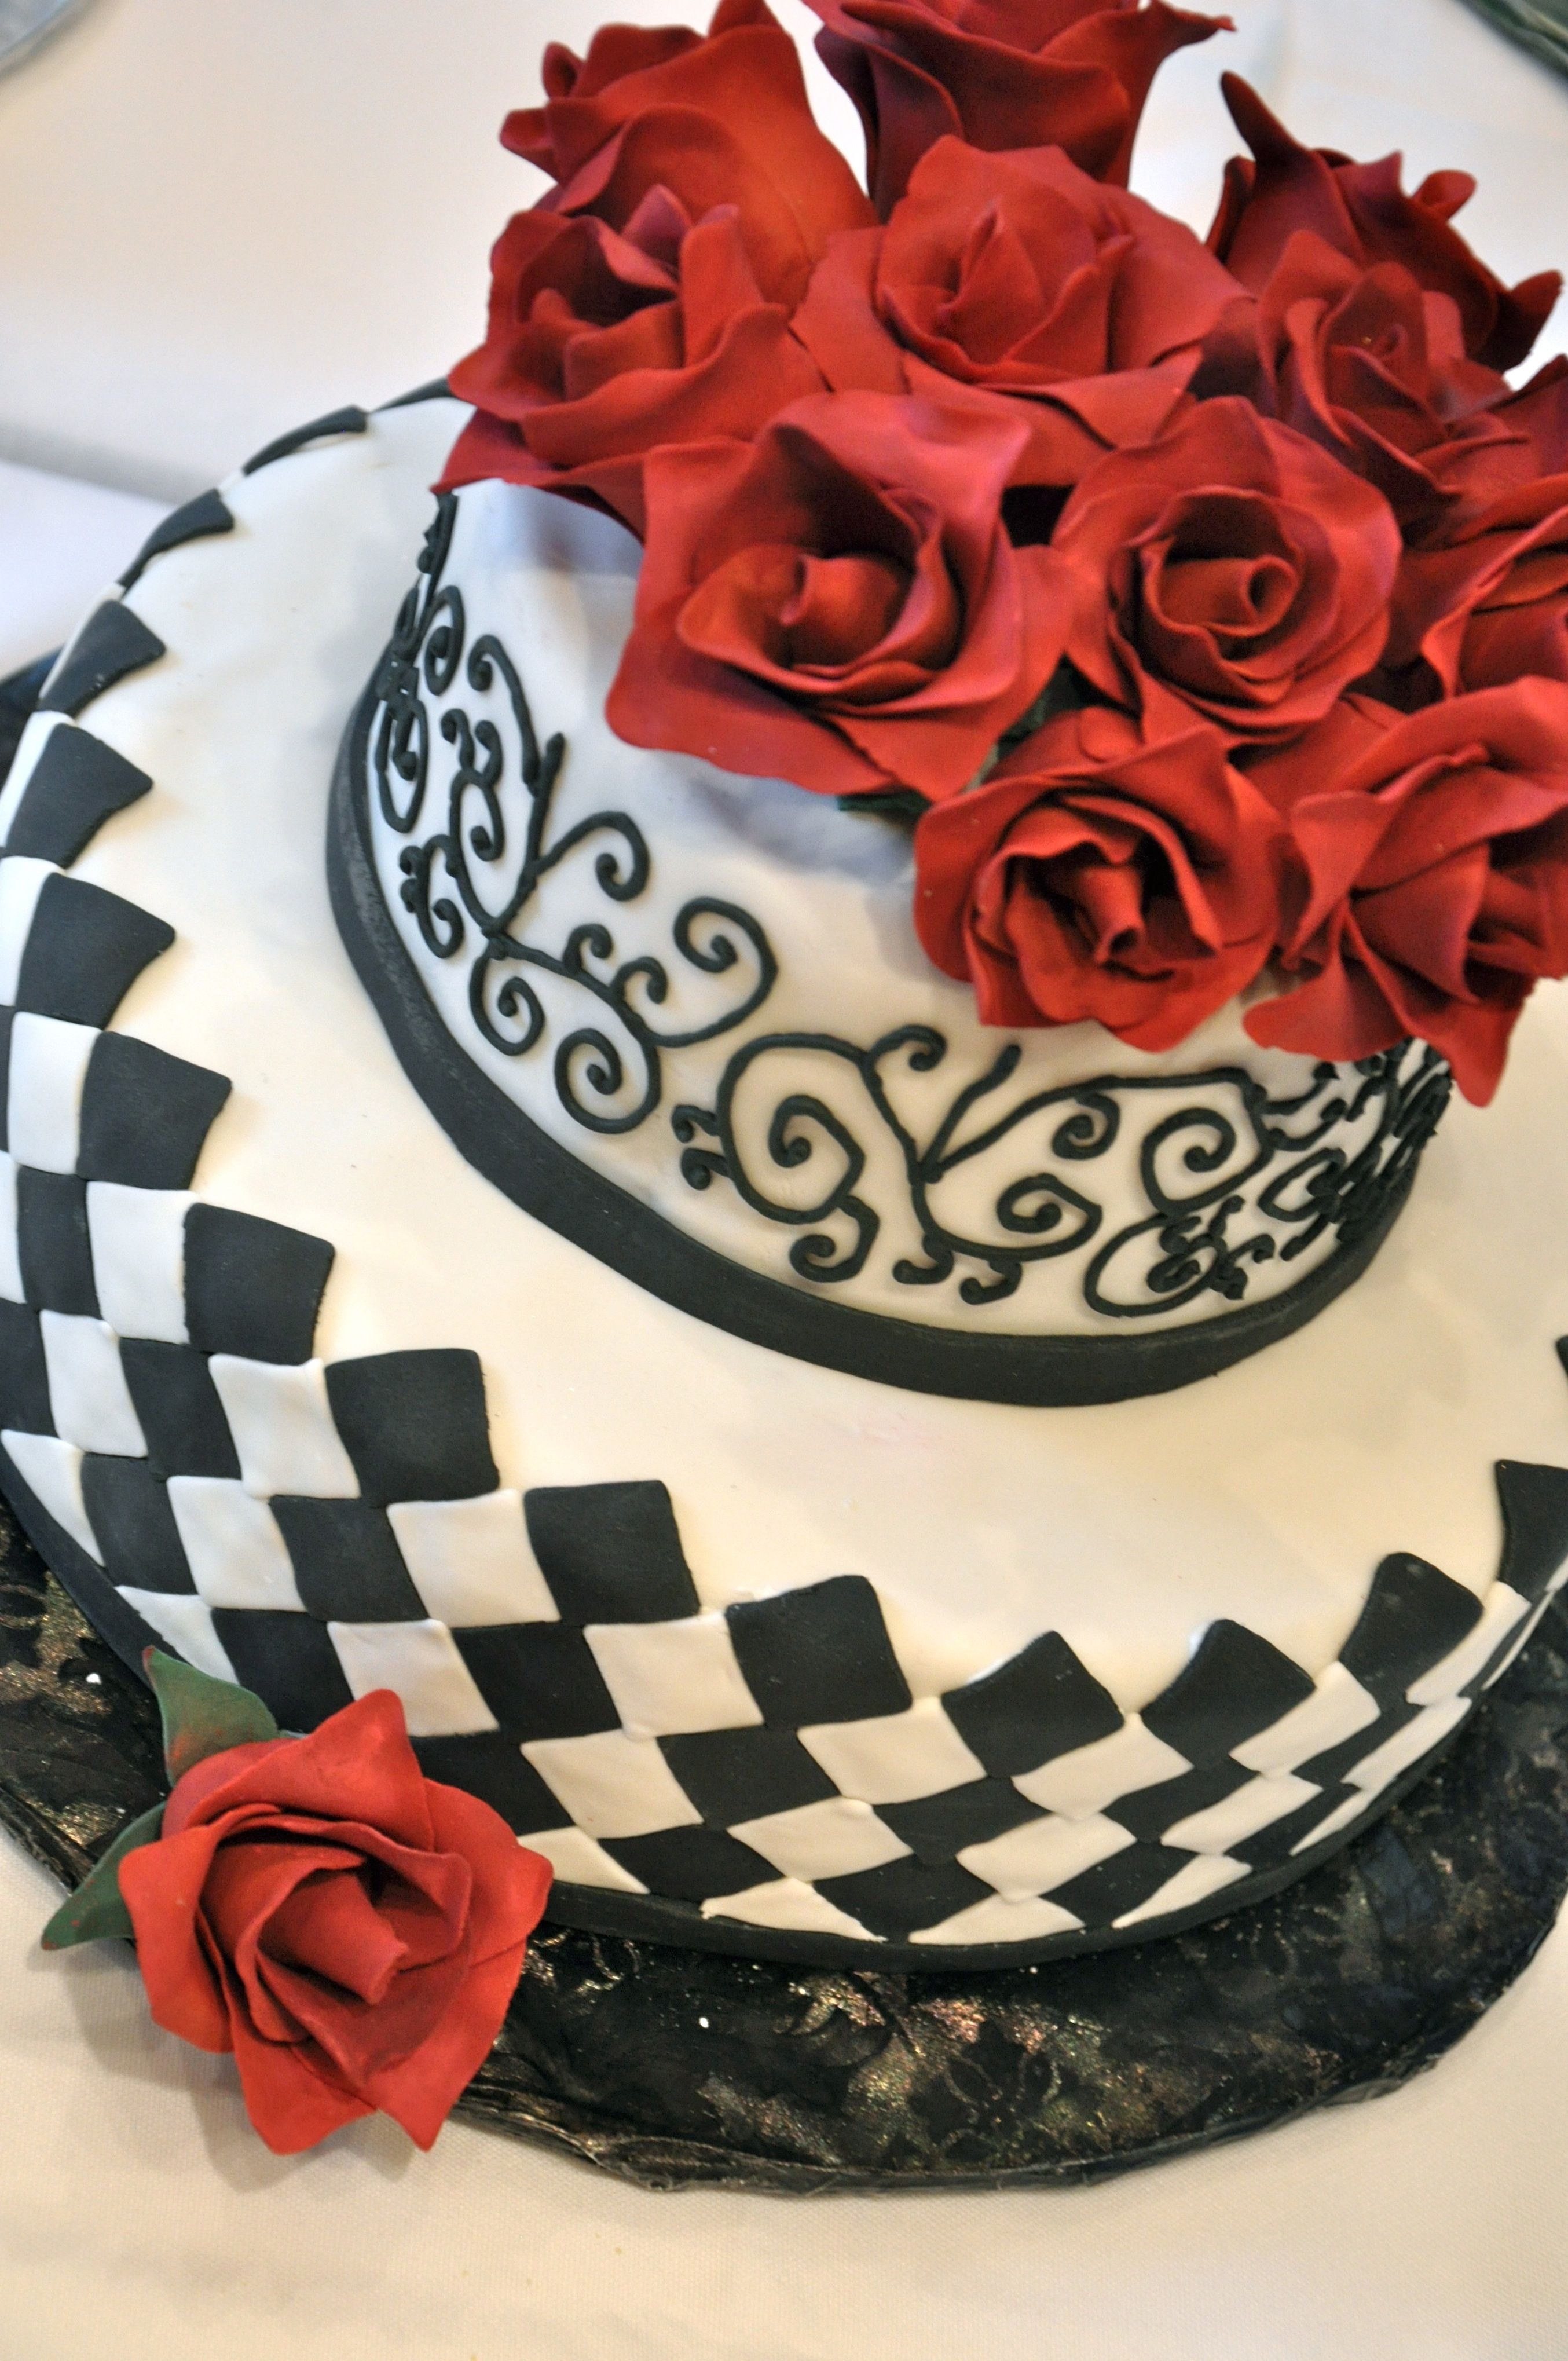 A Black And White Cake With Red Gumpaste Flowers Made By An Ice